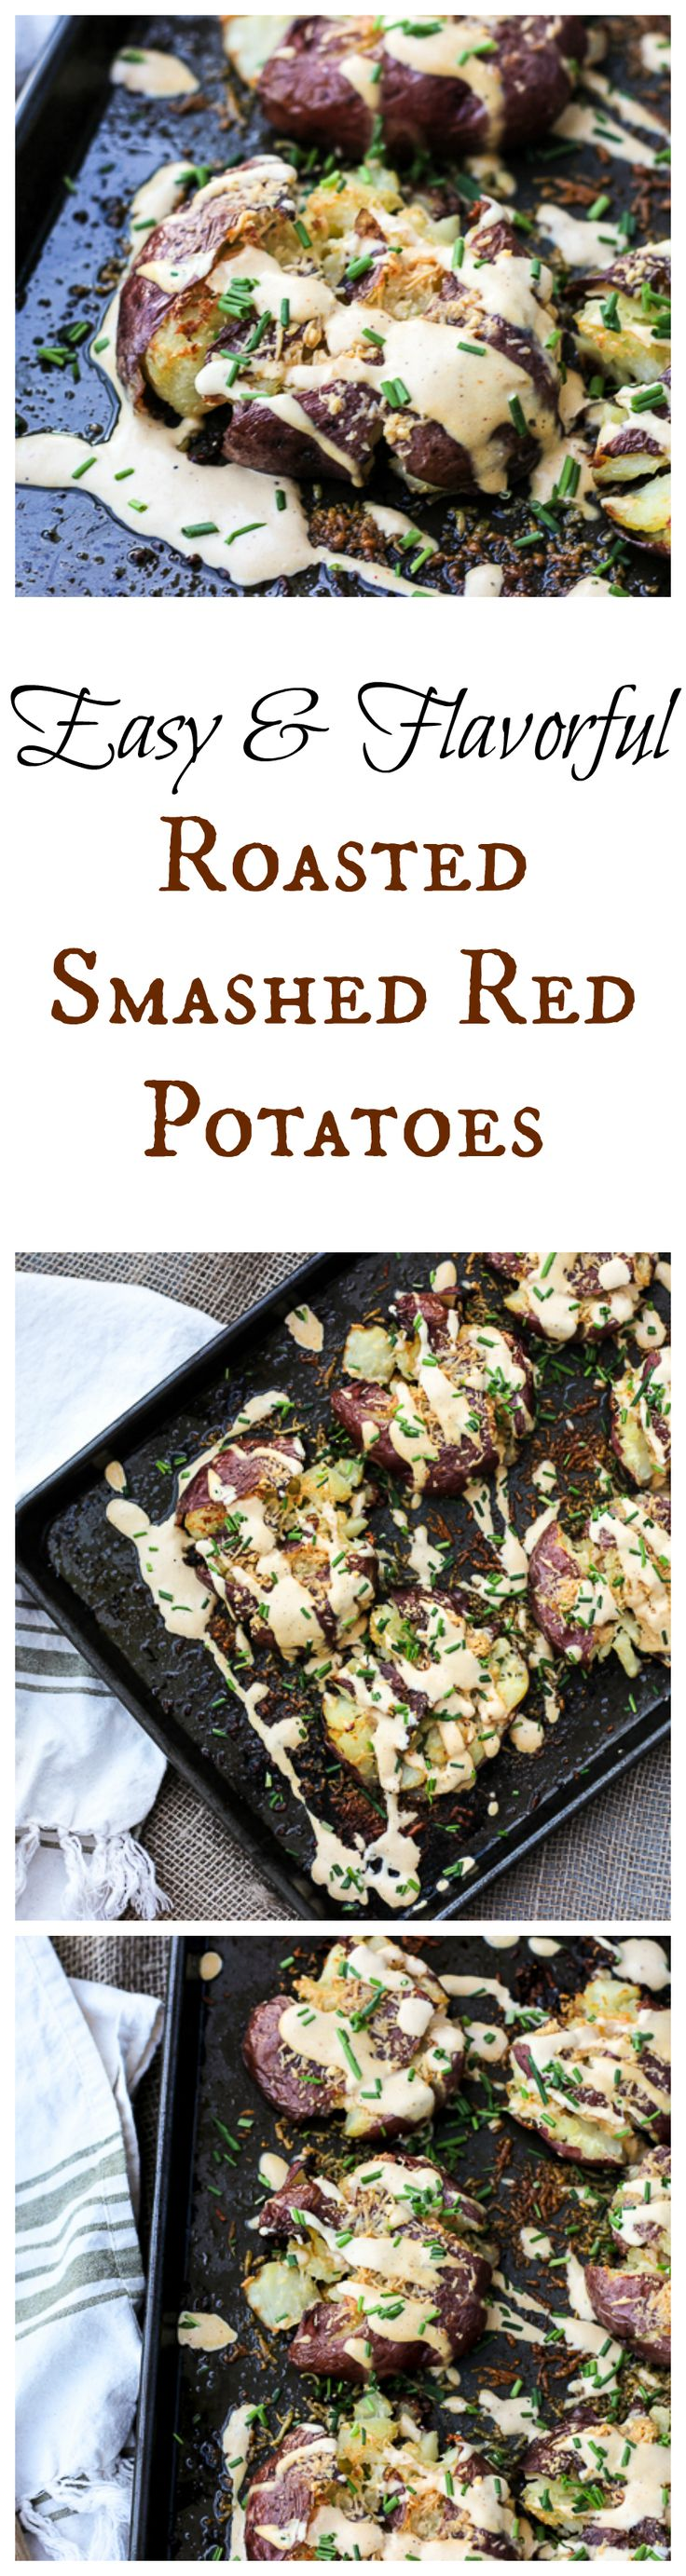 Jeff Mauro's Smashed then Roasted Red Potatoes with Zesty Mustard Cream and Fresh Chives. This is SO good, SO flavorful.